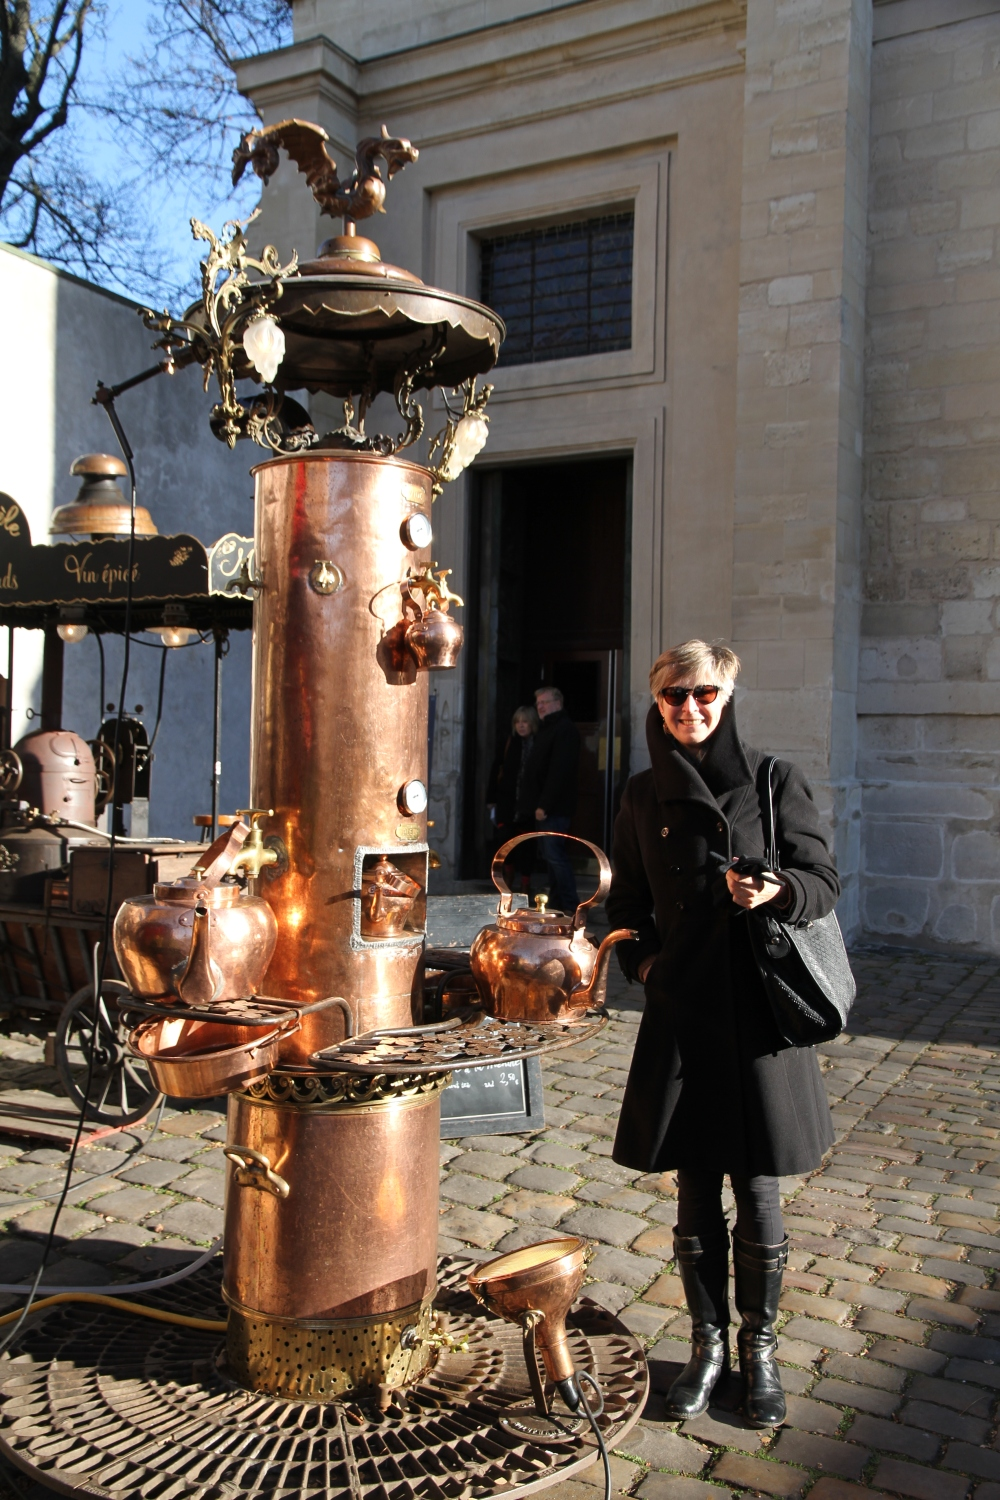 Montmartre copper contraption 2